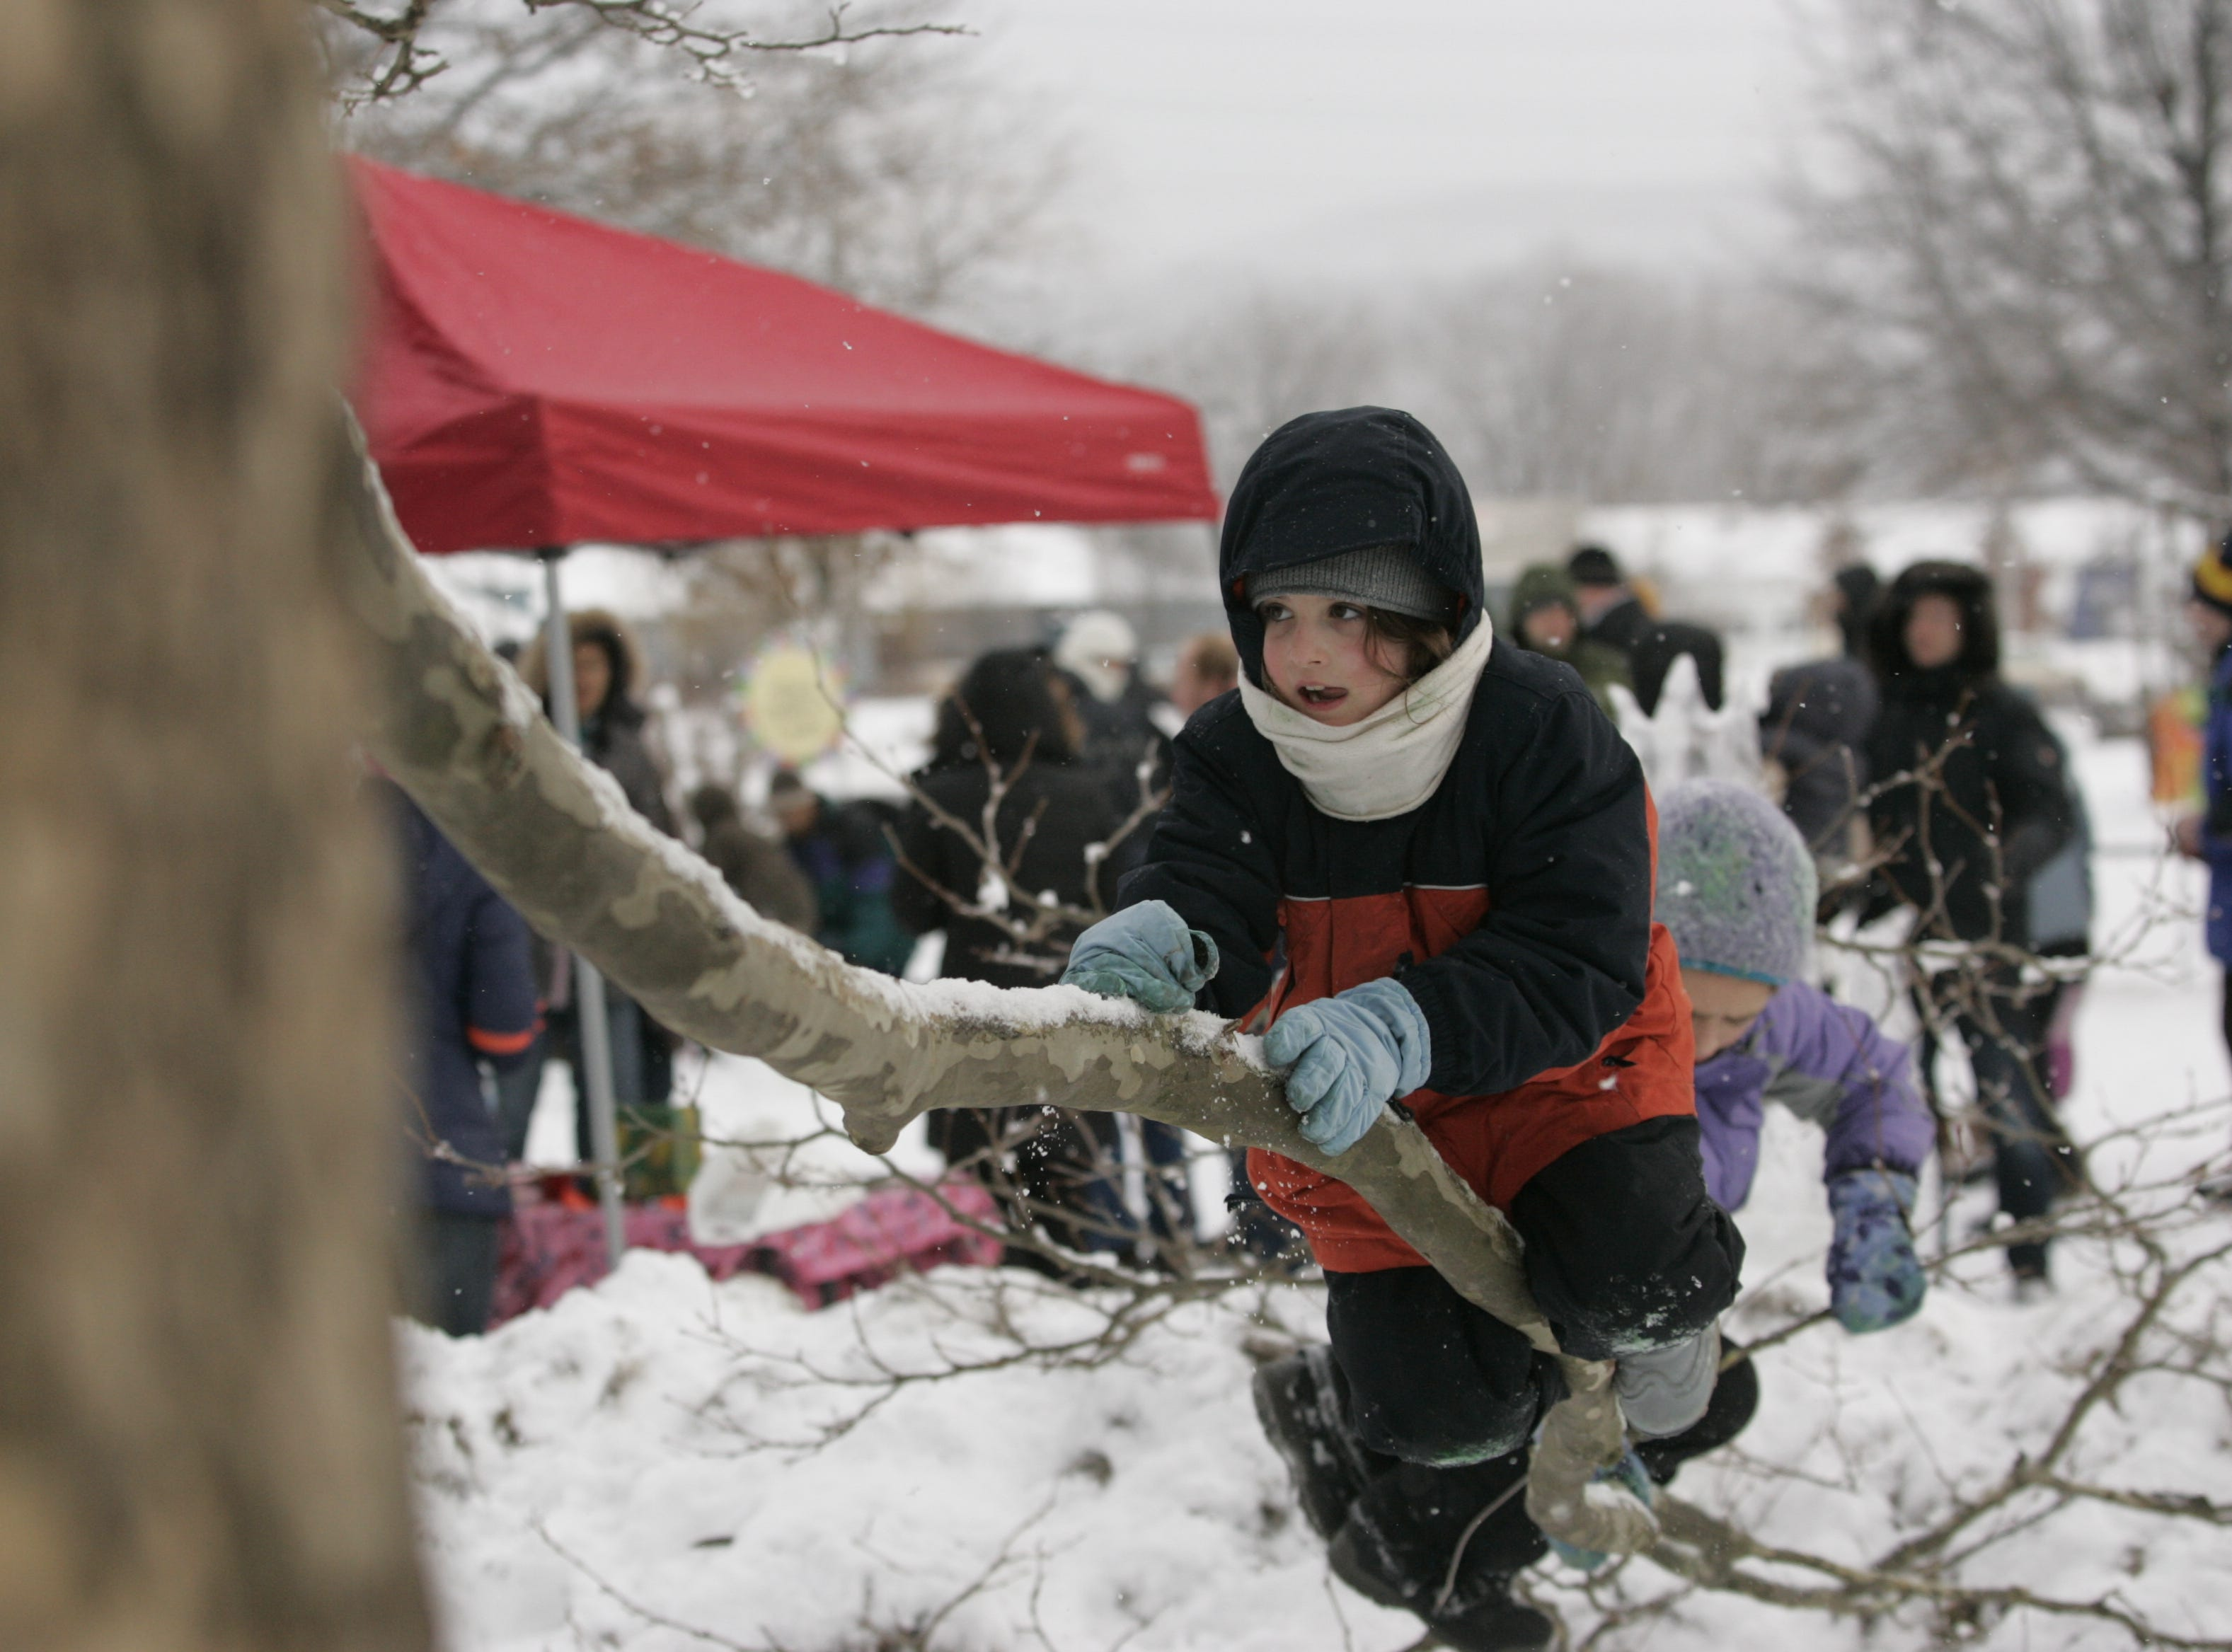 2013: Cady Austin, 9, of Spencer, climbs a tree branch with her friend Lydia Diboun, 9, Van Etten, during the Fire and Ice Festival on Saturday.